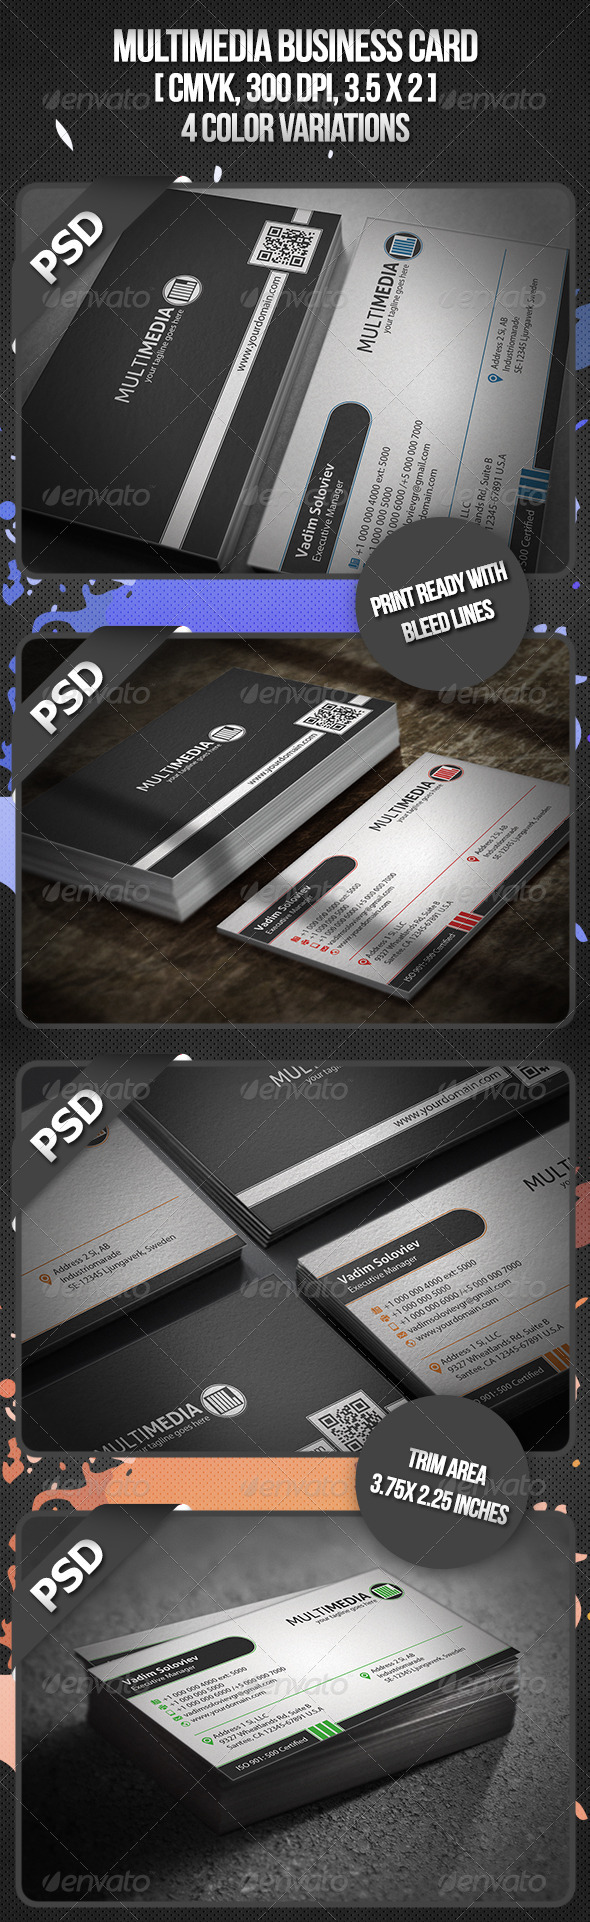 Multimedia Business Card - Corporate Business Cards